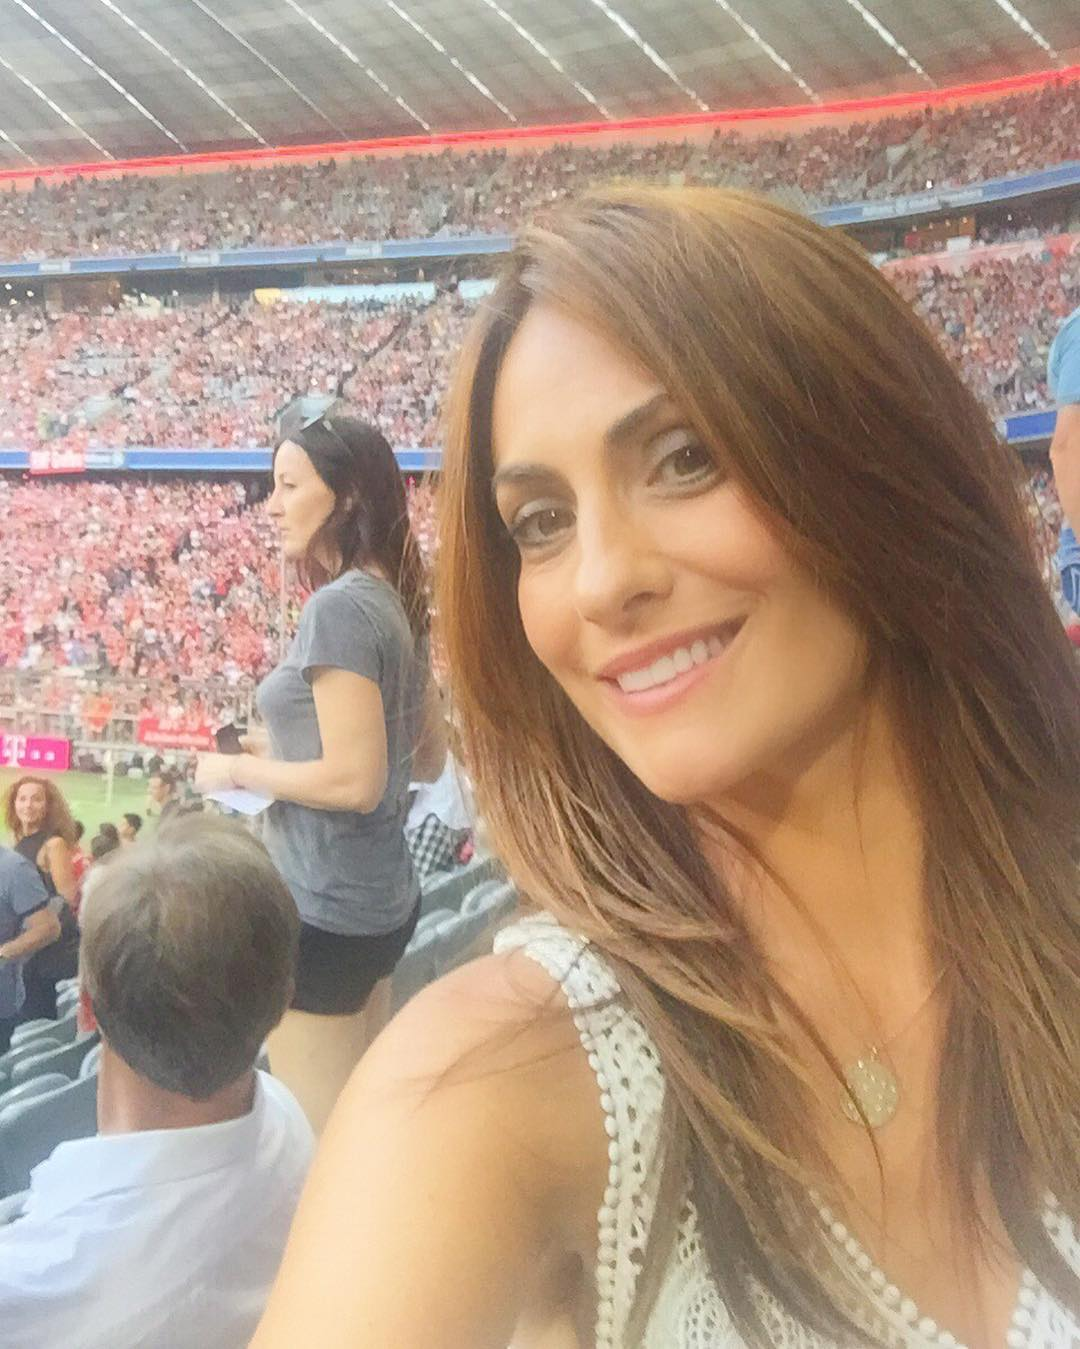 Nagore Aranburu, the beautiful wife of Xabi Alonso